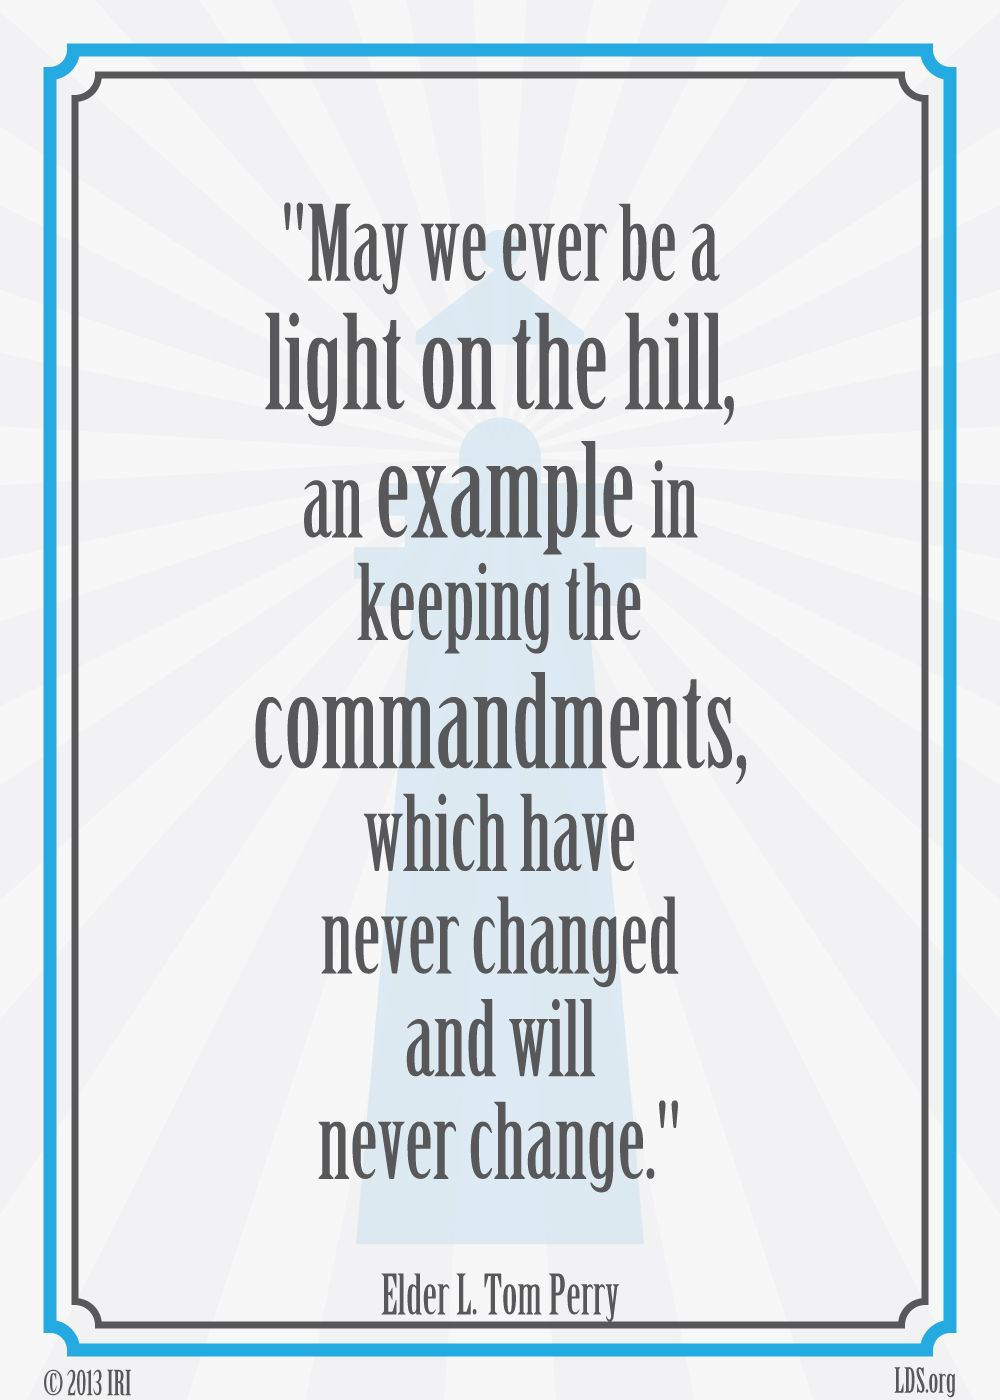 """May we ever be a light on the hill, an example in keeping the commandments, which have never changed and will never change."" — Elder L. Tom Perry"